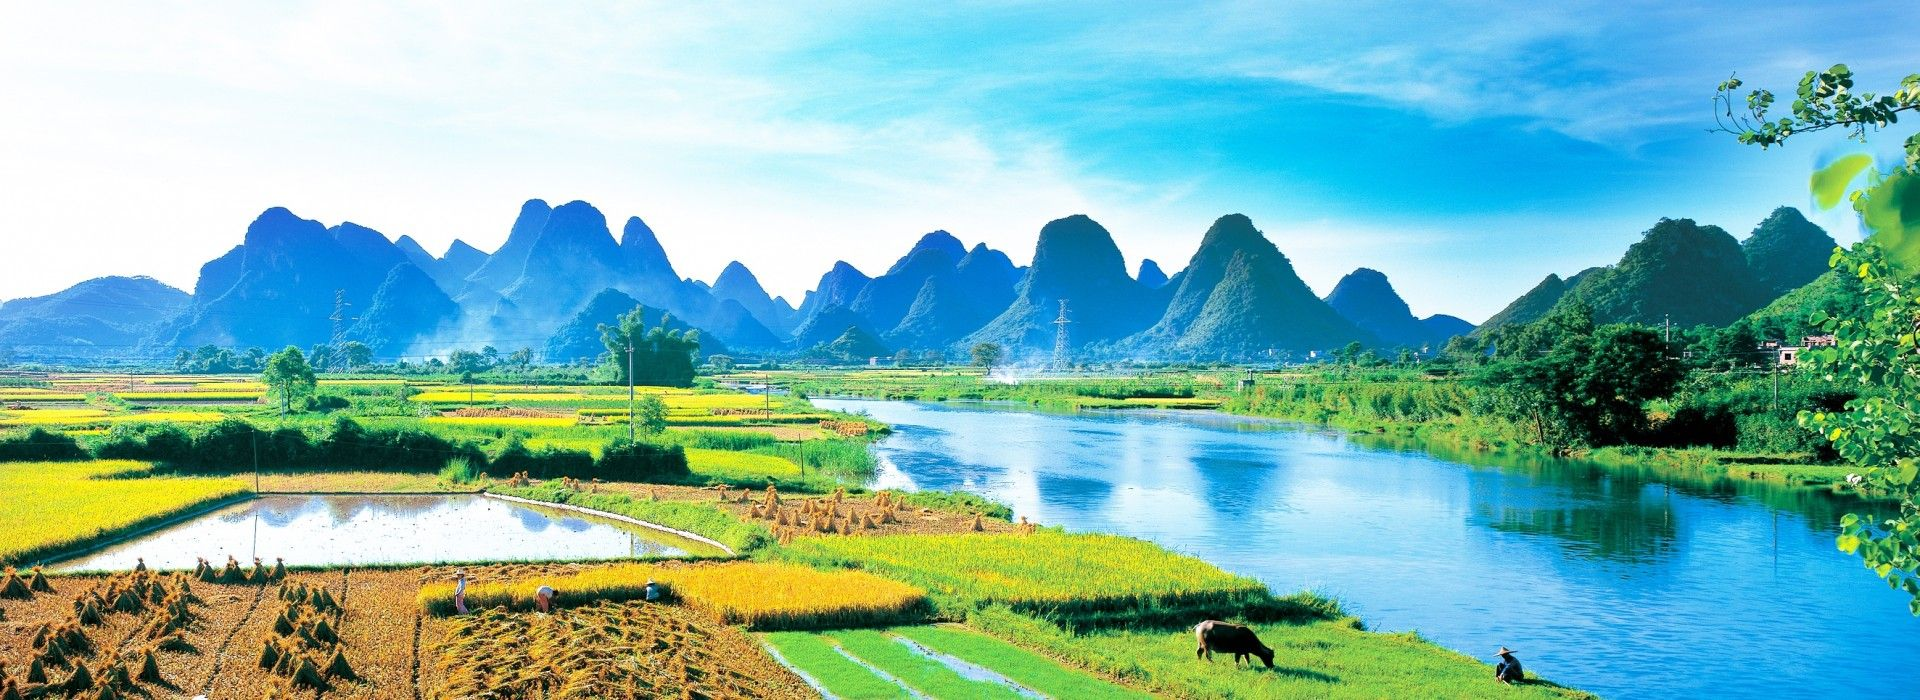 Guilin Tours and Travel to Guilin